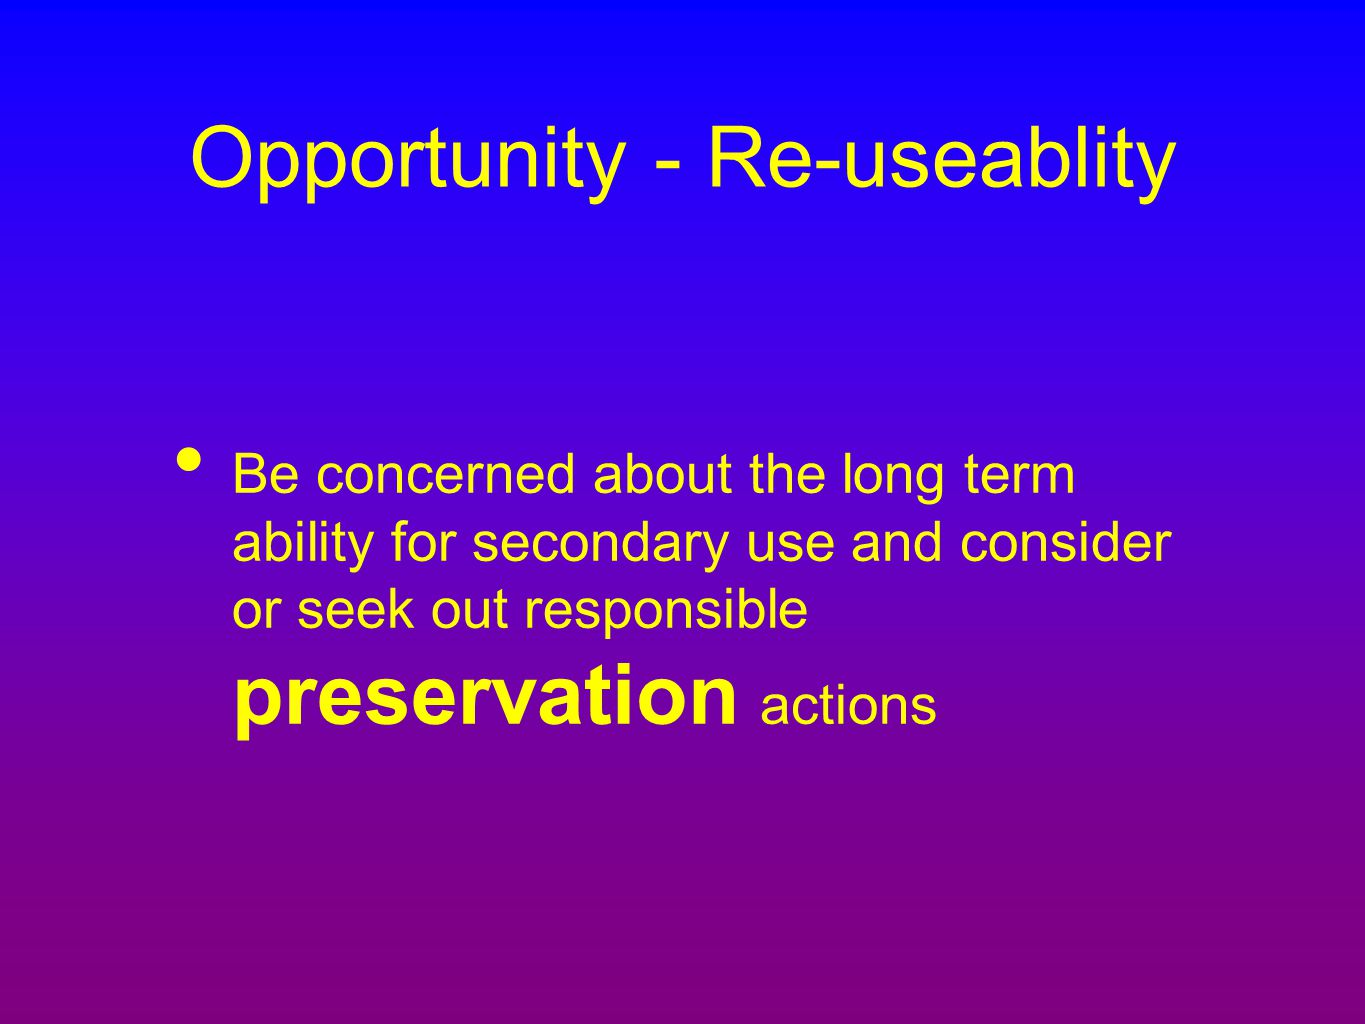 Opportunity - Re-useablity Be concerned about the long term ability for secondary use and consider or seek out responsible preservation actions